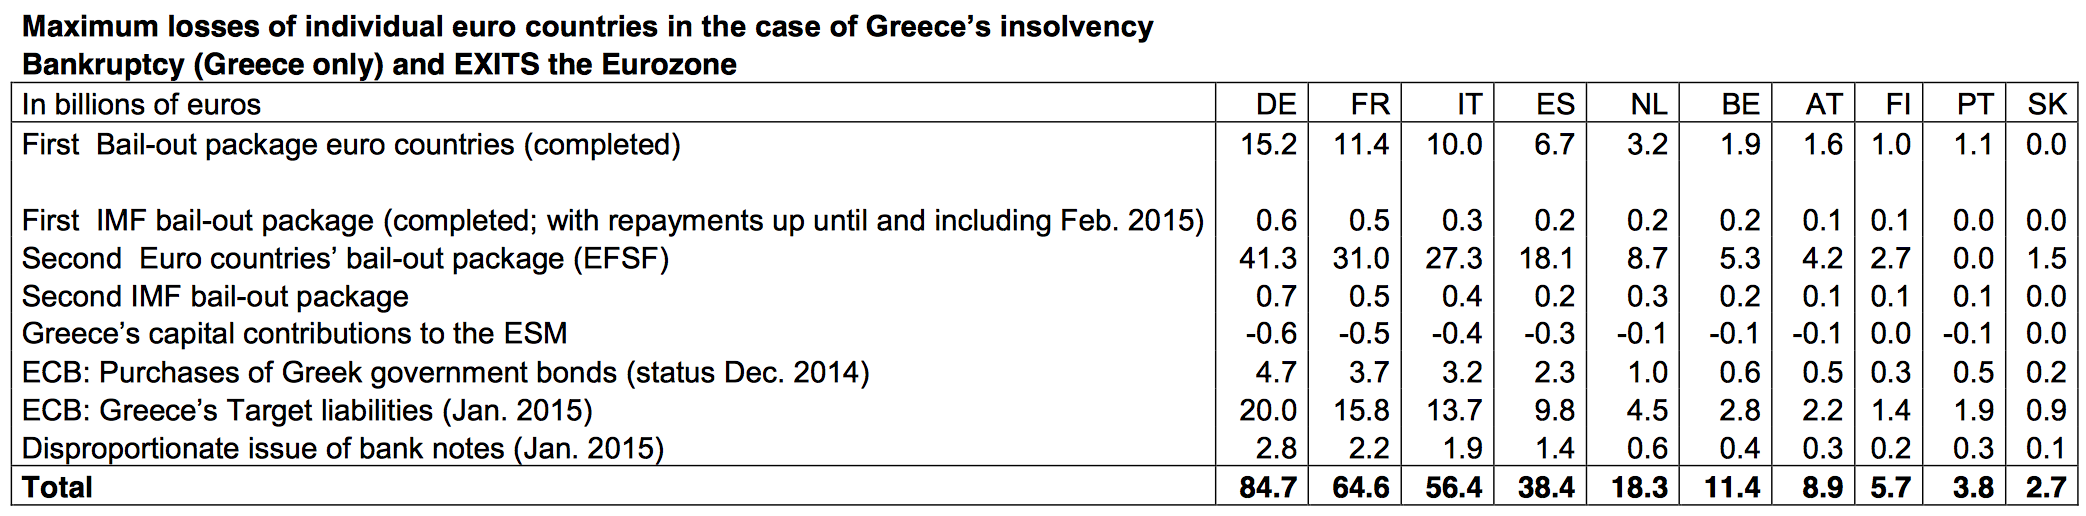 Grexit Costs for European Sovereigns